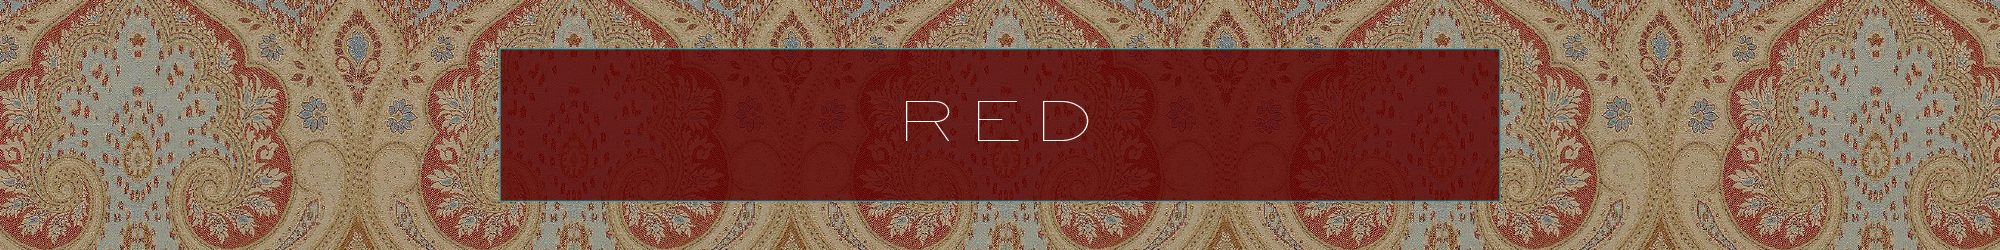 "In the words of the inimitable Diana Vreeland: ""Red is the great clarifier - bright and revealing. I can't imagine becoming bored with red - it would be like  becoming bored with the person you love"". Enough said."